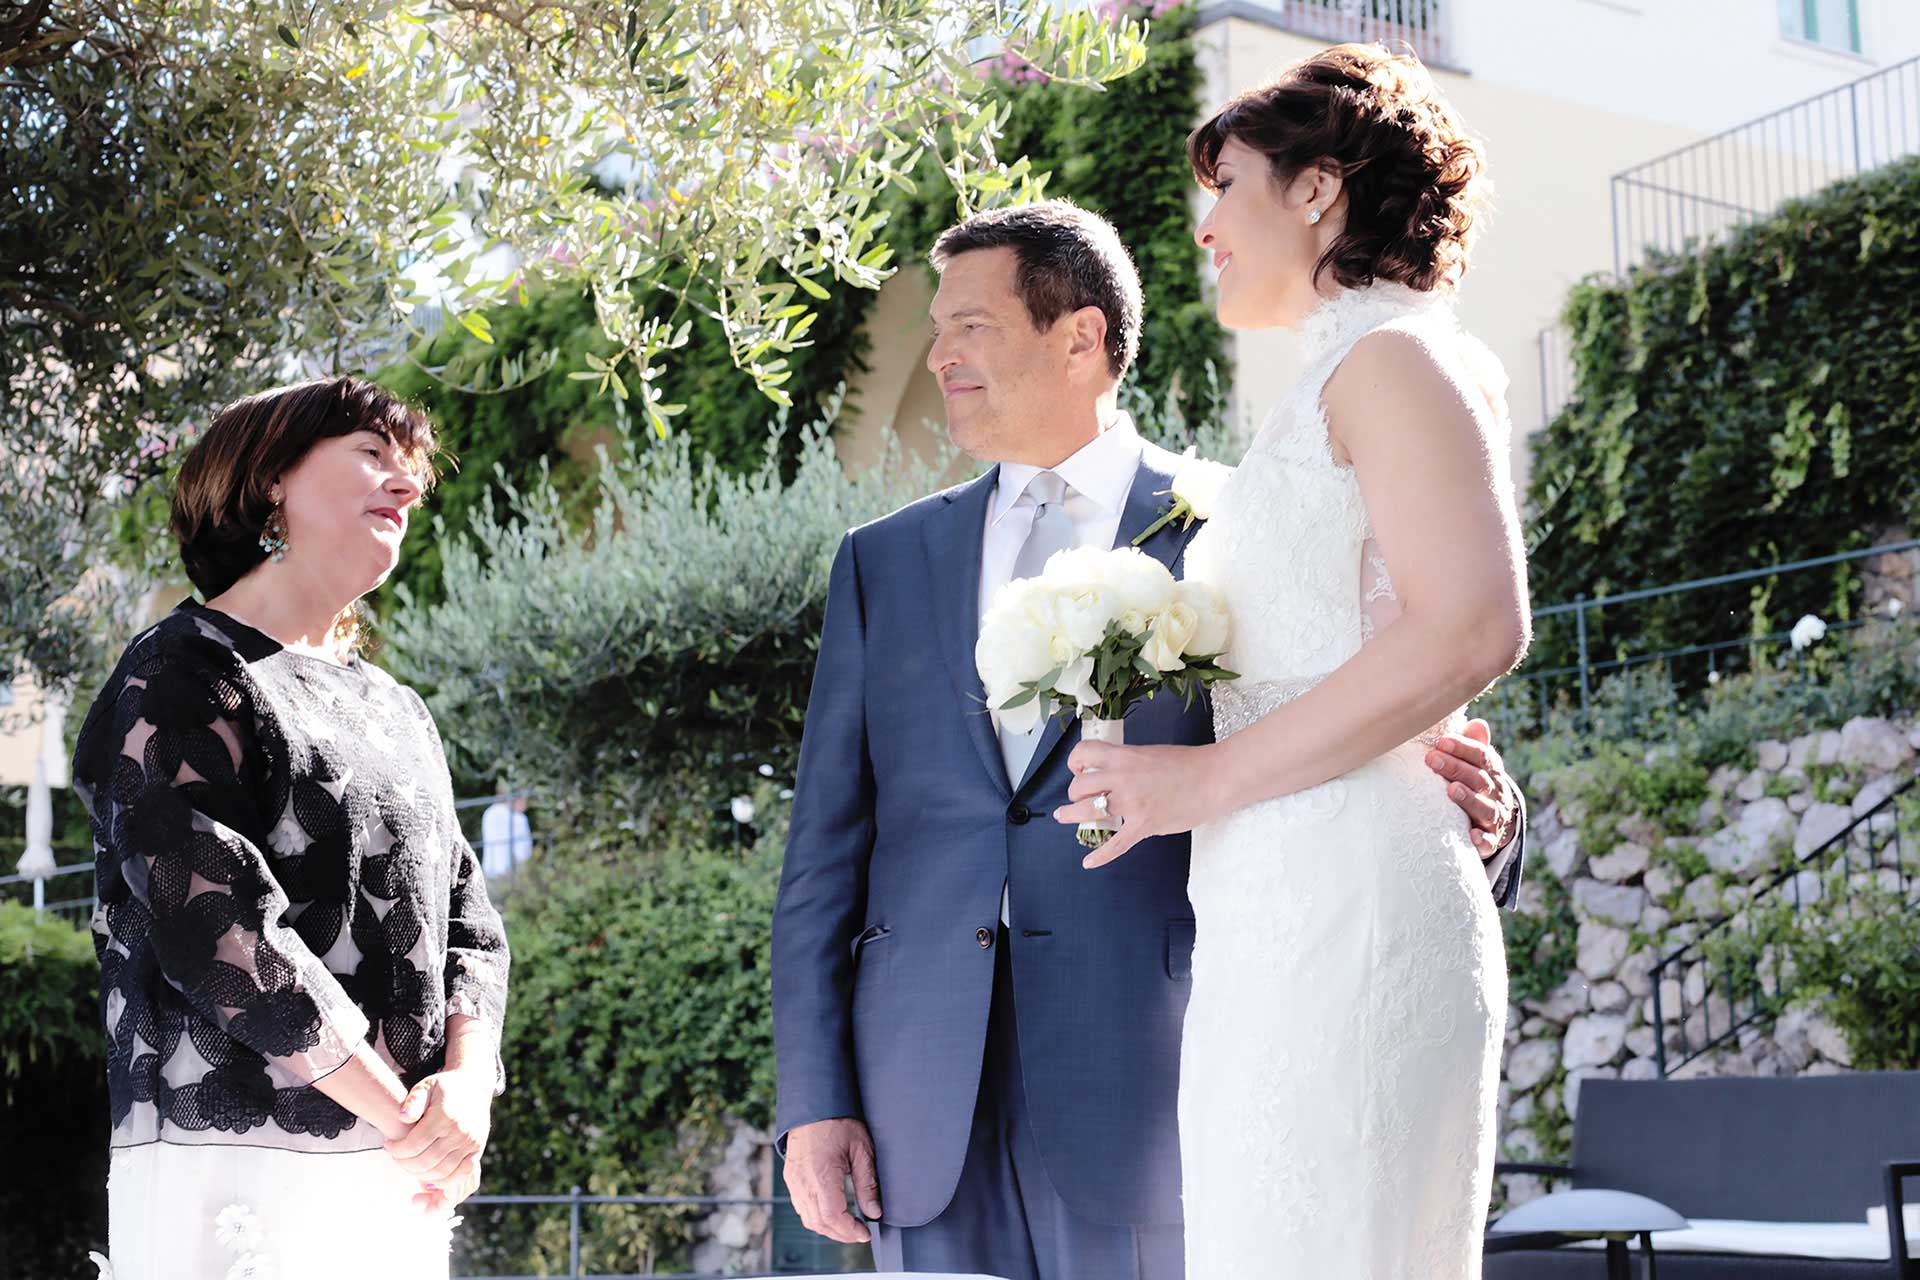 Destination Civil Symbolic Protestant Vows Blessing Jewish Wedding Photographer Hotel Caruso in Ravello Amalfi Coast Italy Claudia Francese Photography Sisters